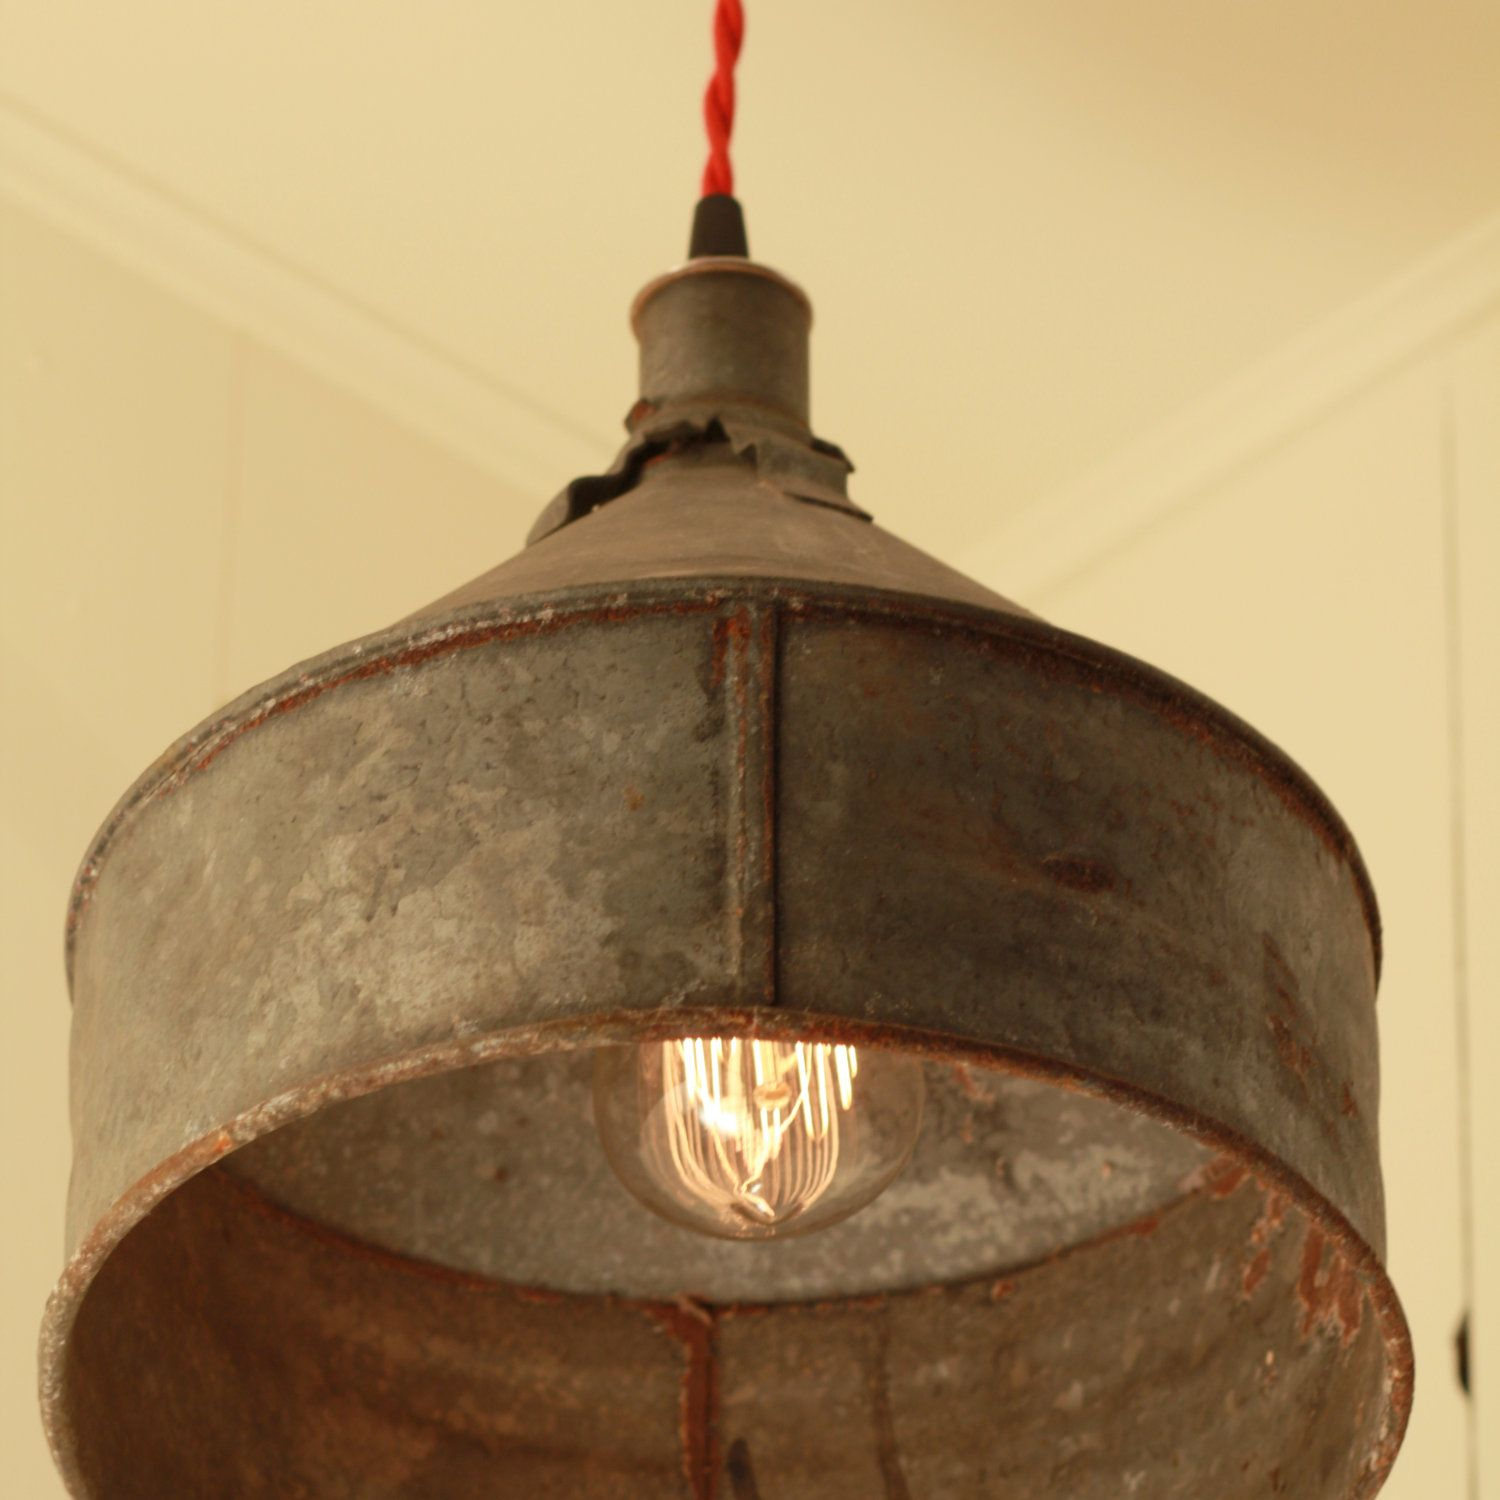 vintage kitchen lighting RESERVED for Jacquidowd Rustic Lighting with Vintage Rustic Funnel Shade Pendant